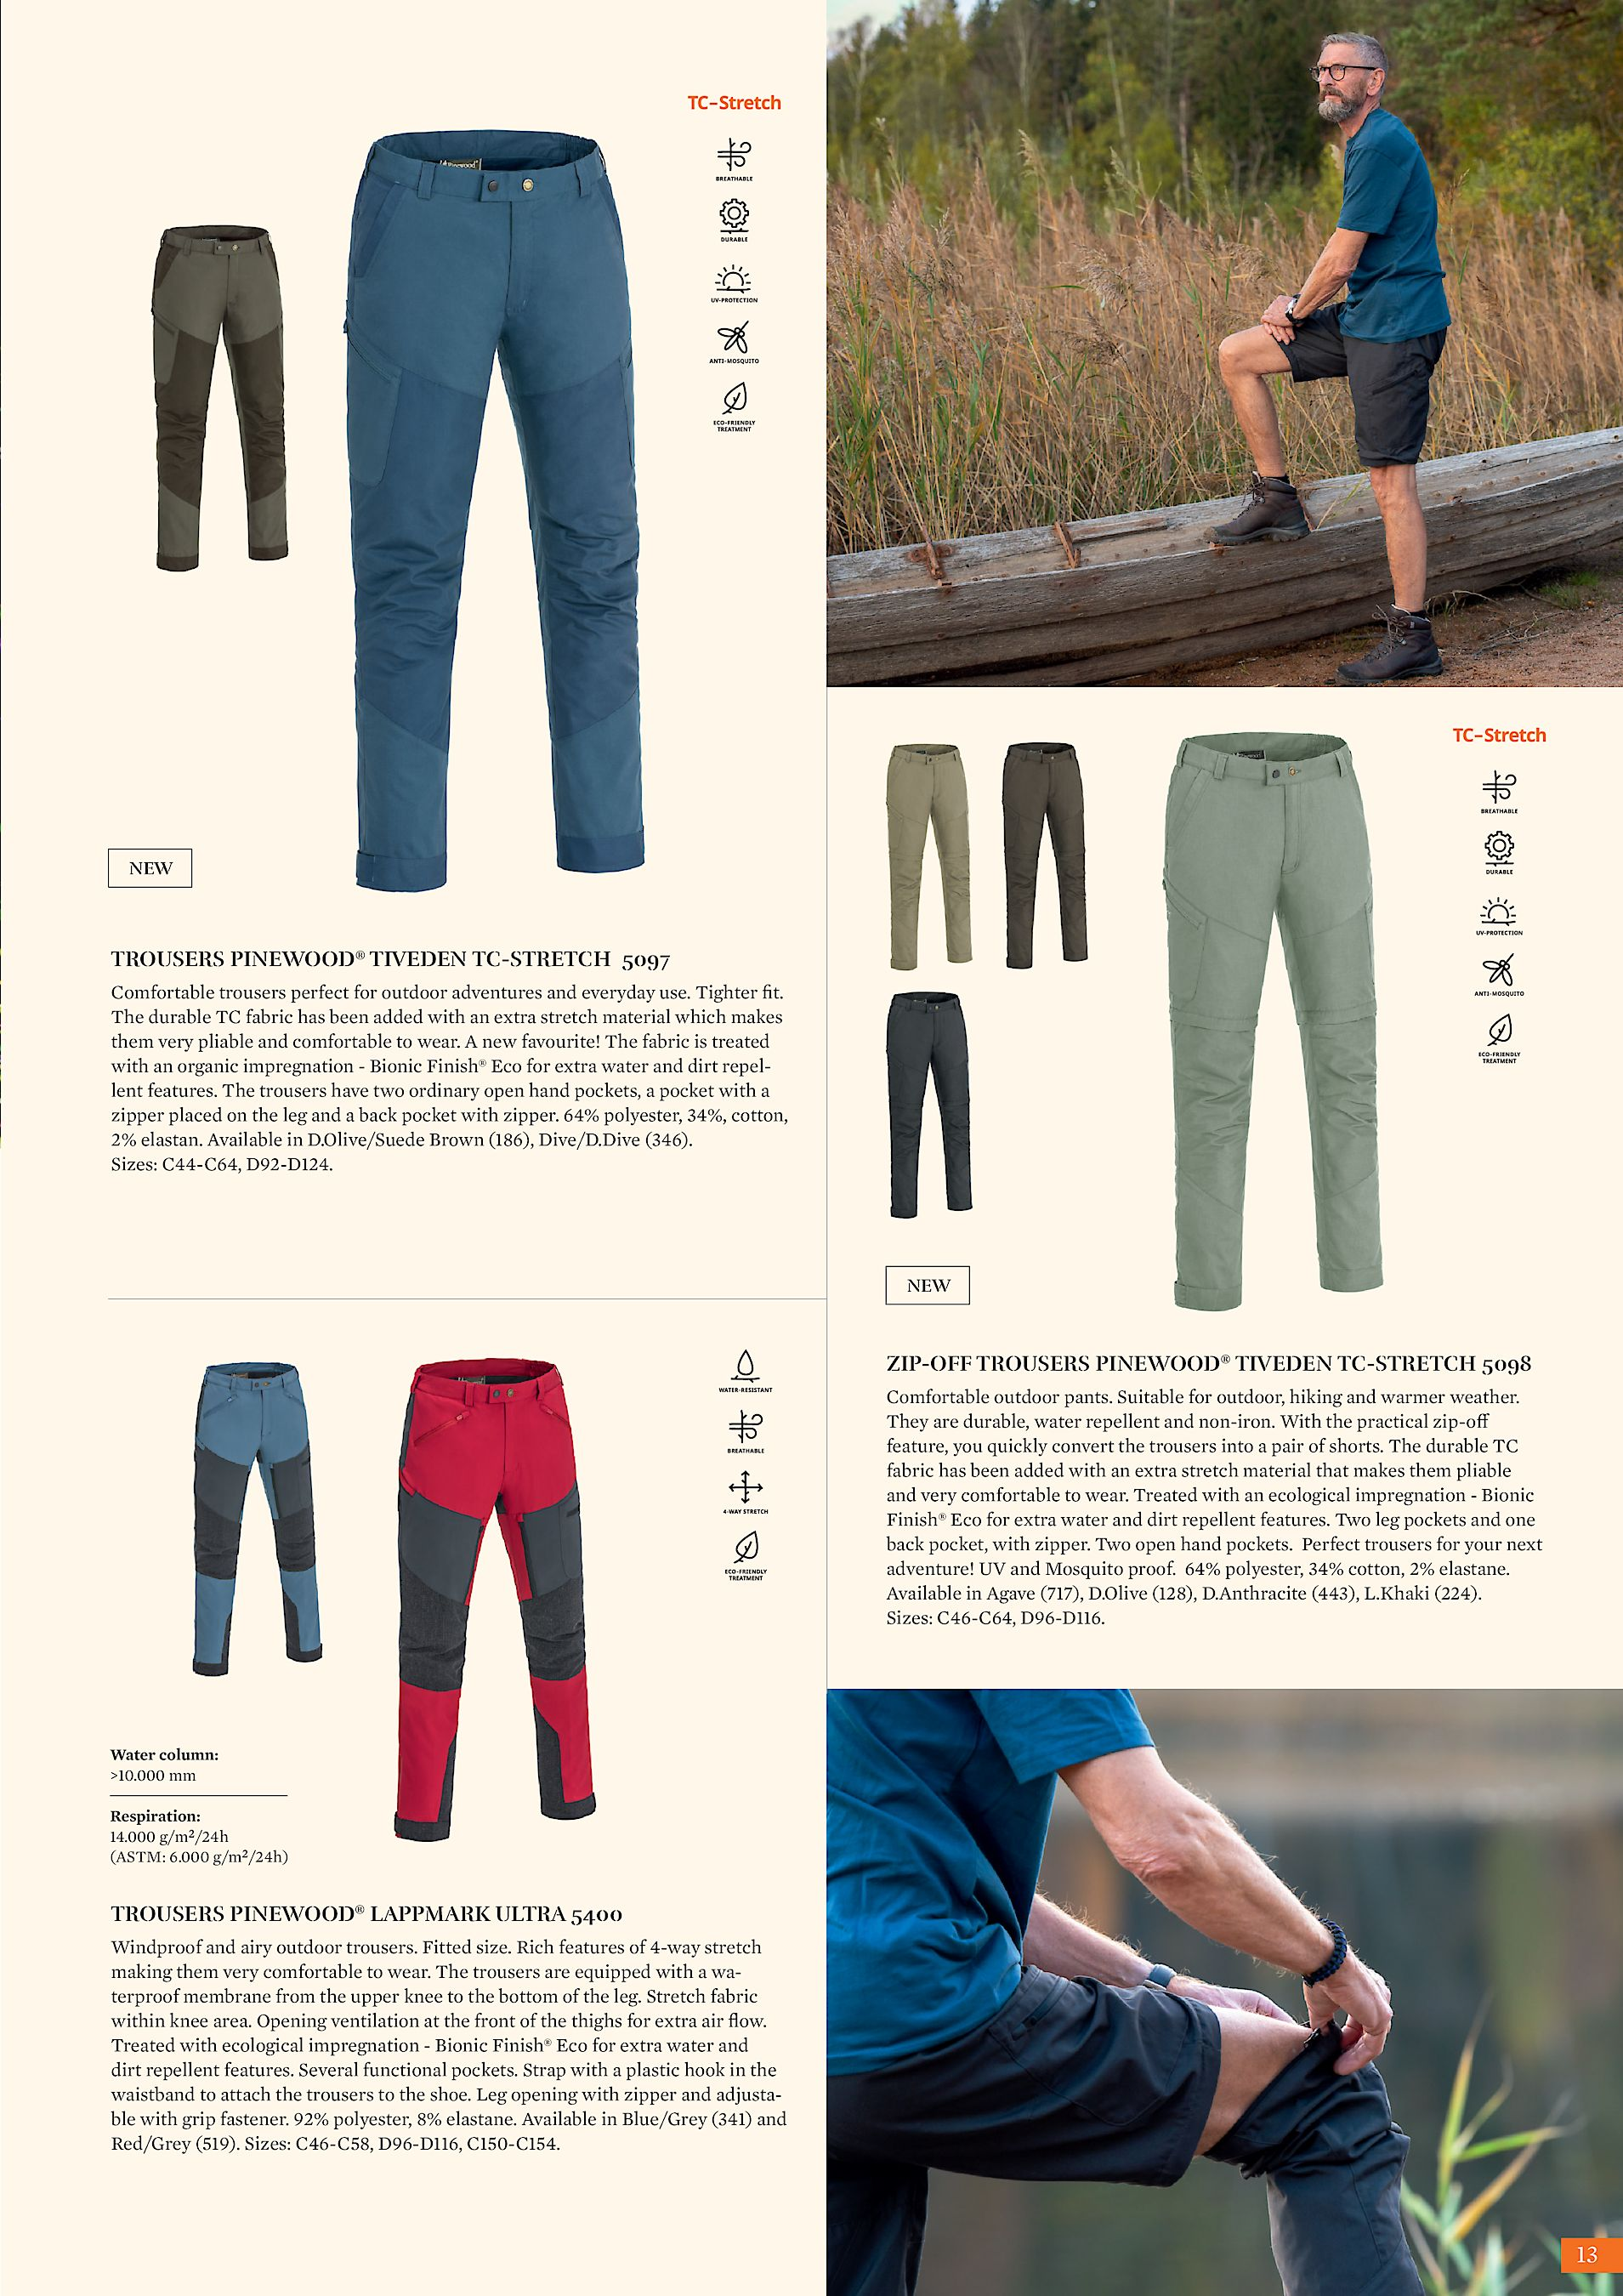 6d089e4955527 NEW TROUSERS PINEWOOD® TIVEDEN TC-STRETCH 5097 Comfortable trousers perfect  for outdoor adventures and everyday use. Tighter fit. The durable TC fabric  has ...